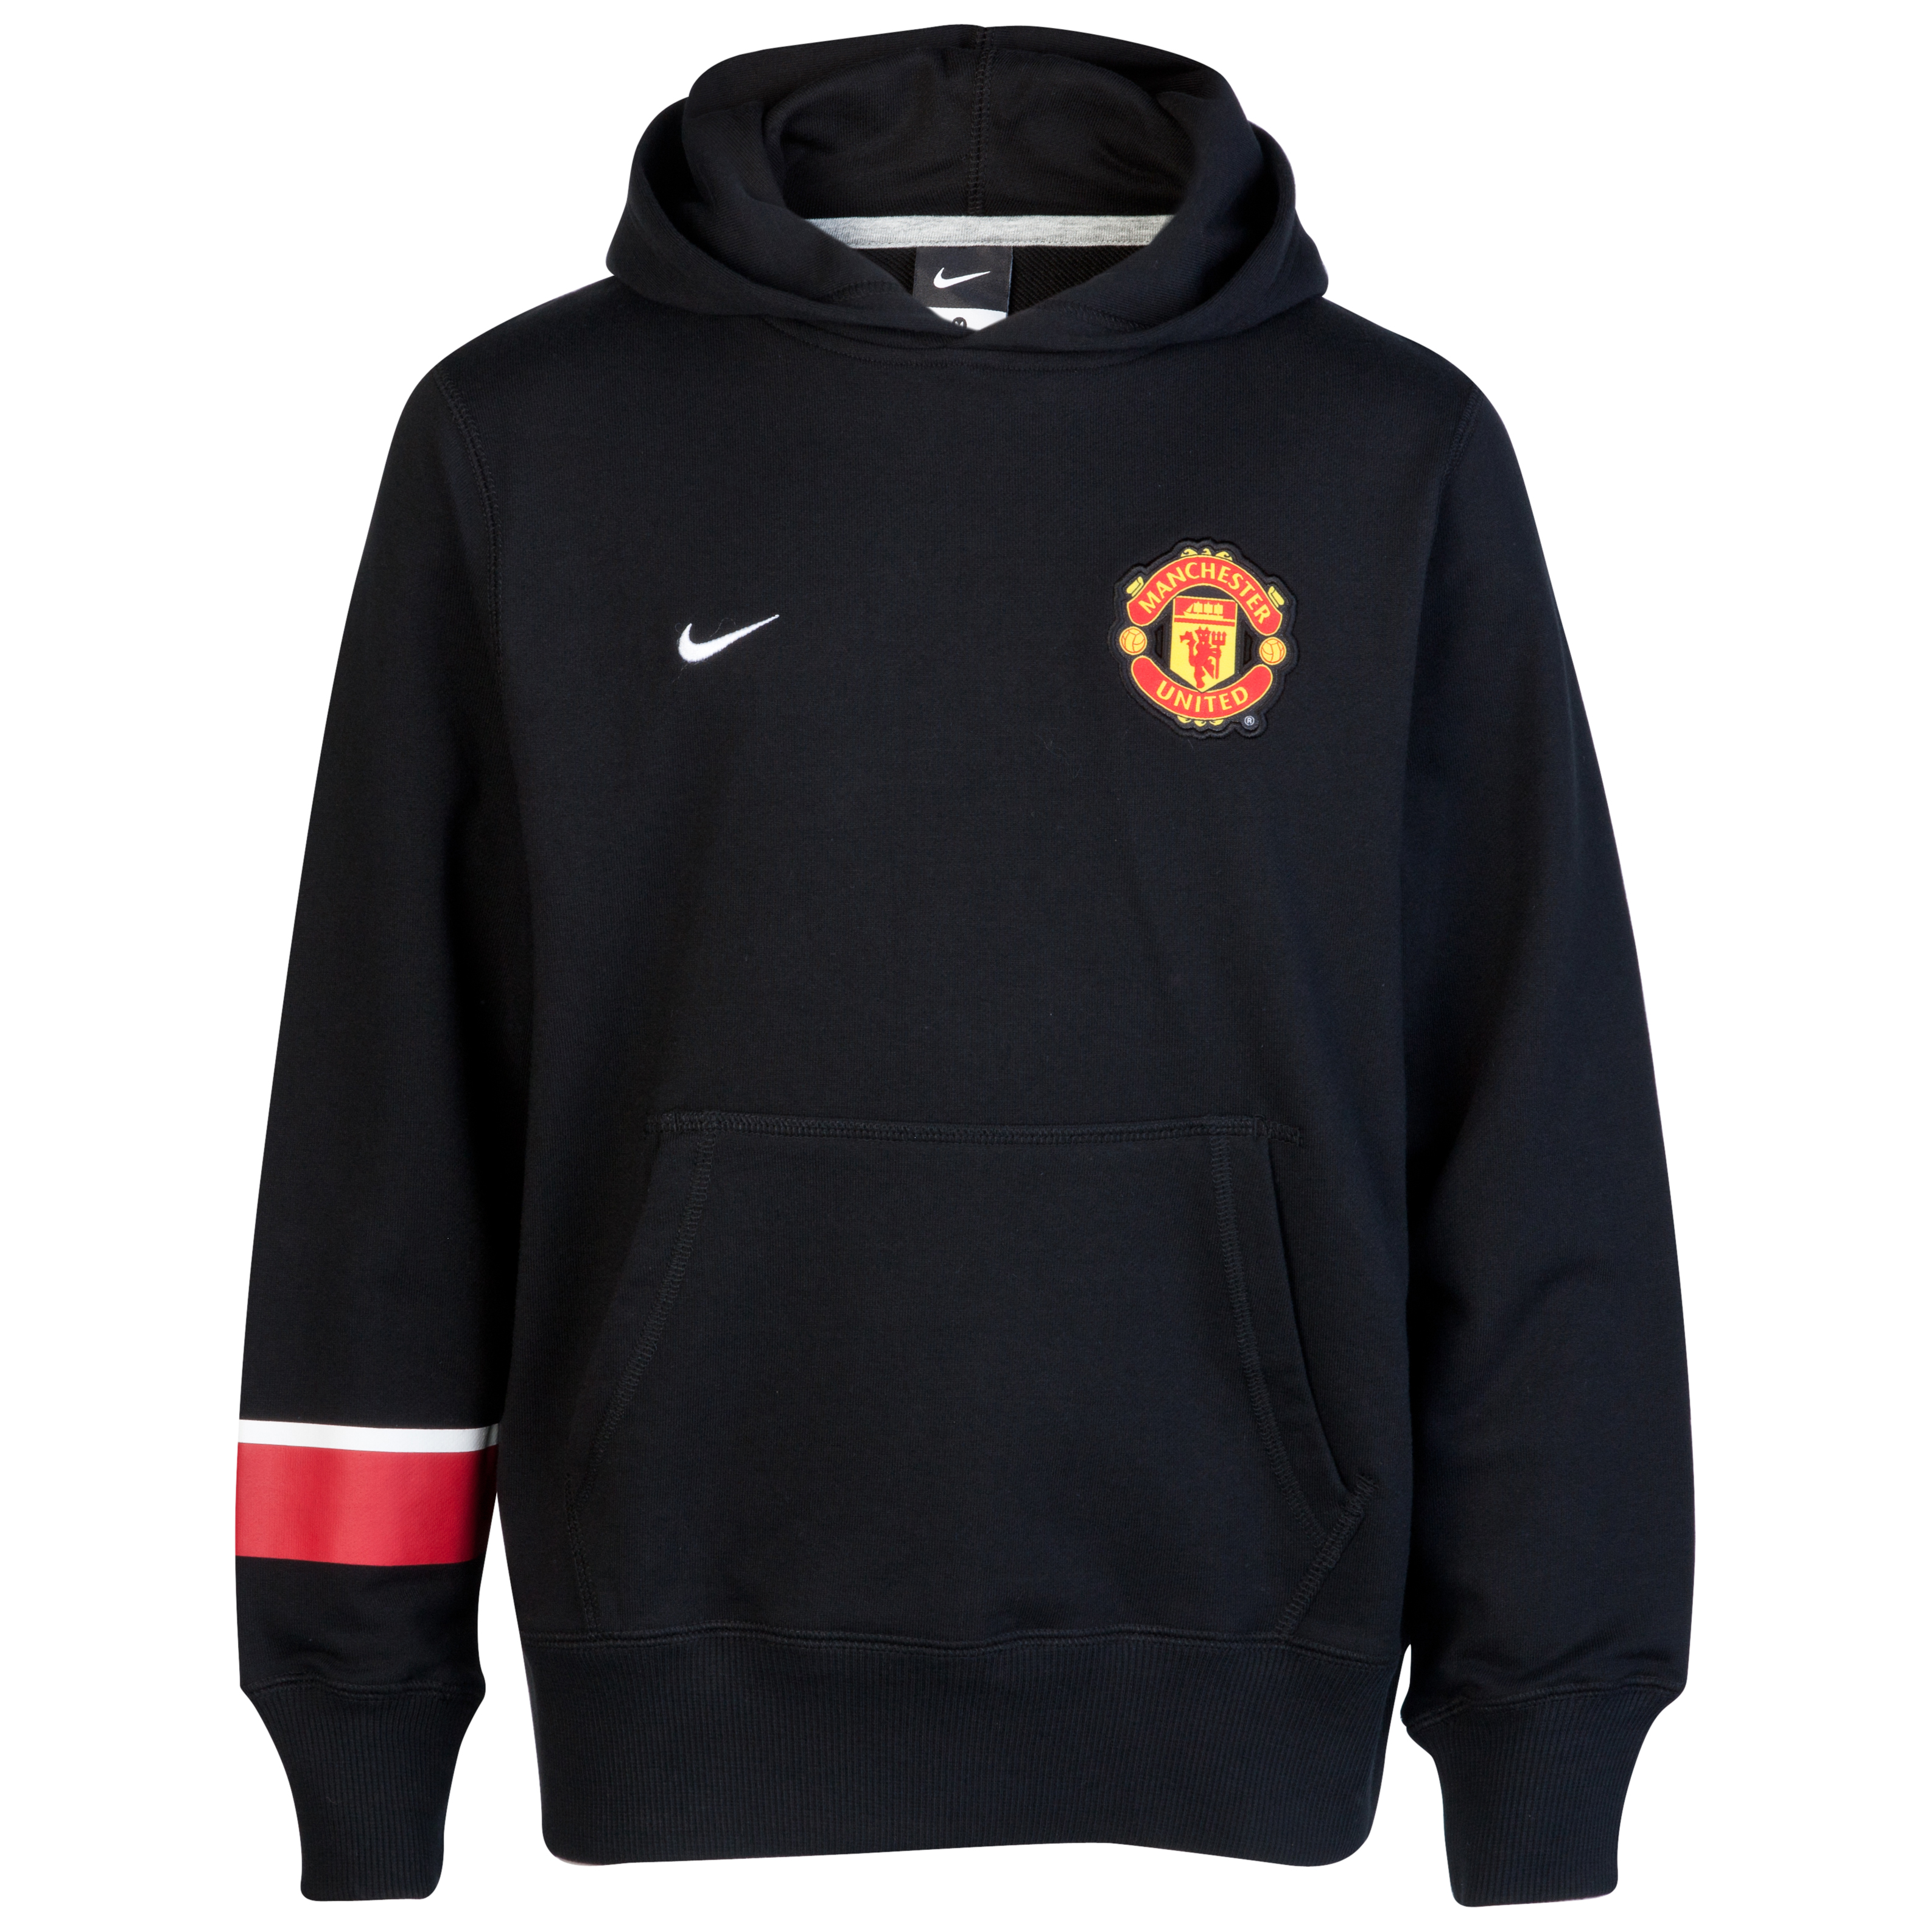 Manchester United Core Hoodie - Black/White - Youths